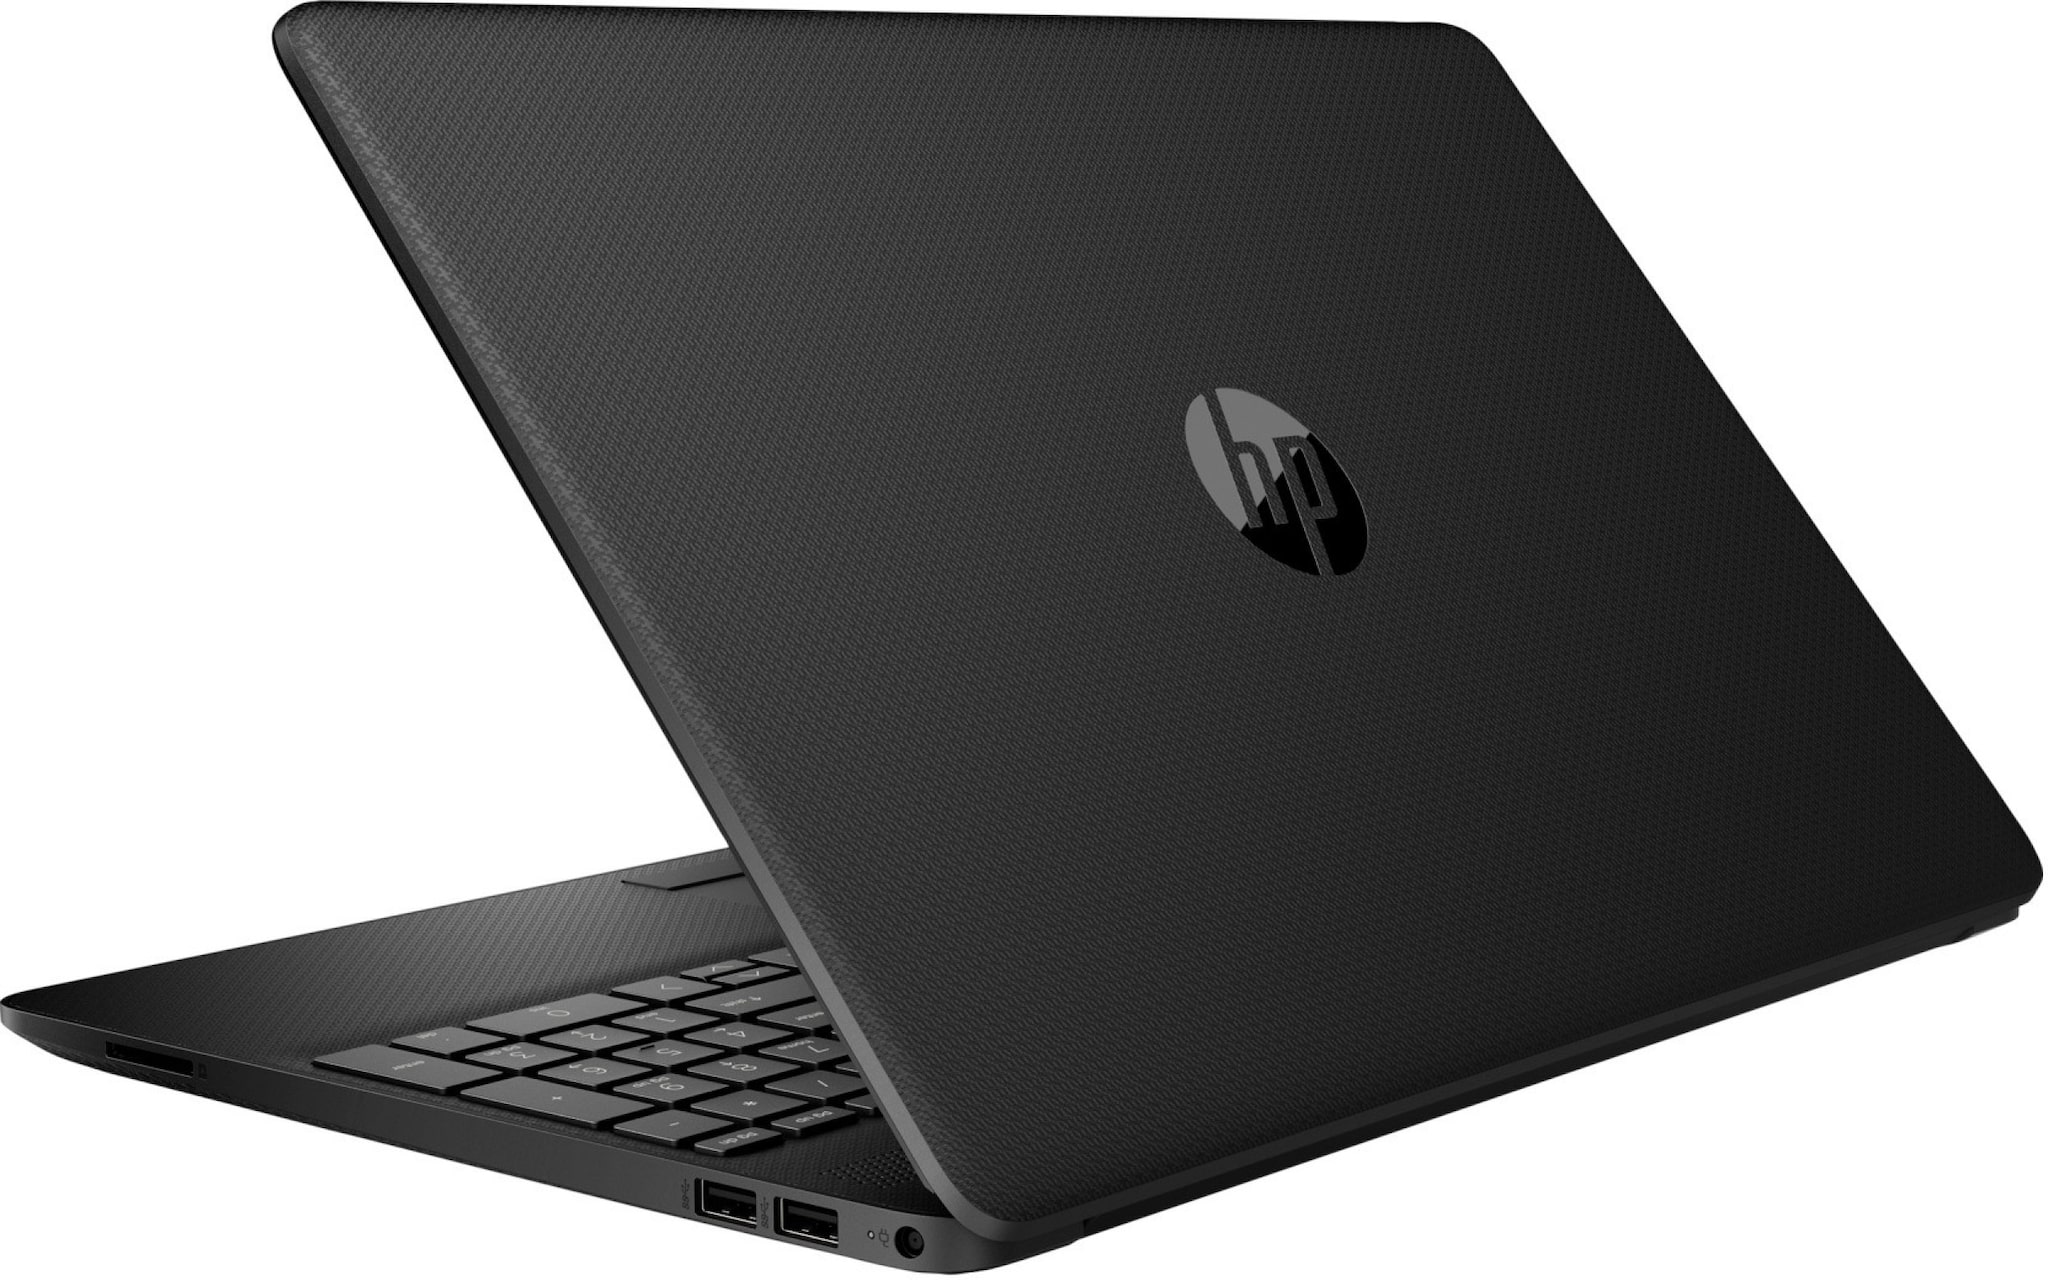 HP 15s Ryzen 3 Dual Core 3250U - (4 GB/1 TB HDD/Windows 10 Home)  15s-GR0006AU Thin and Light Laptop (15.6 inch, Jet Black, 1.76 kg, With MS  Office) Online at 5% off. |Paytm Mall